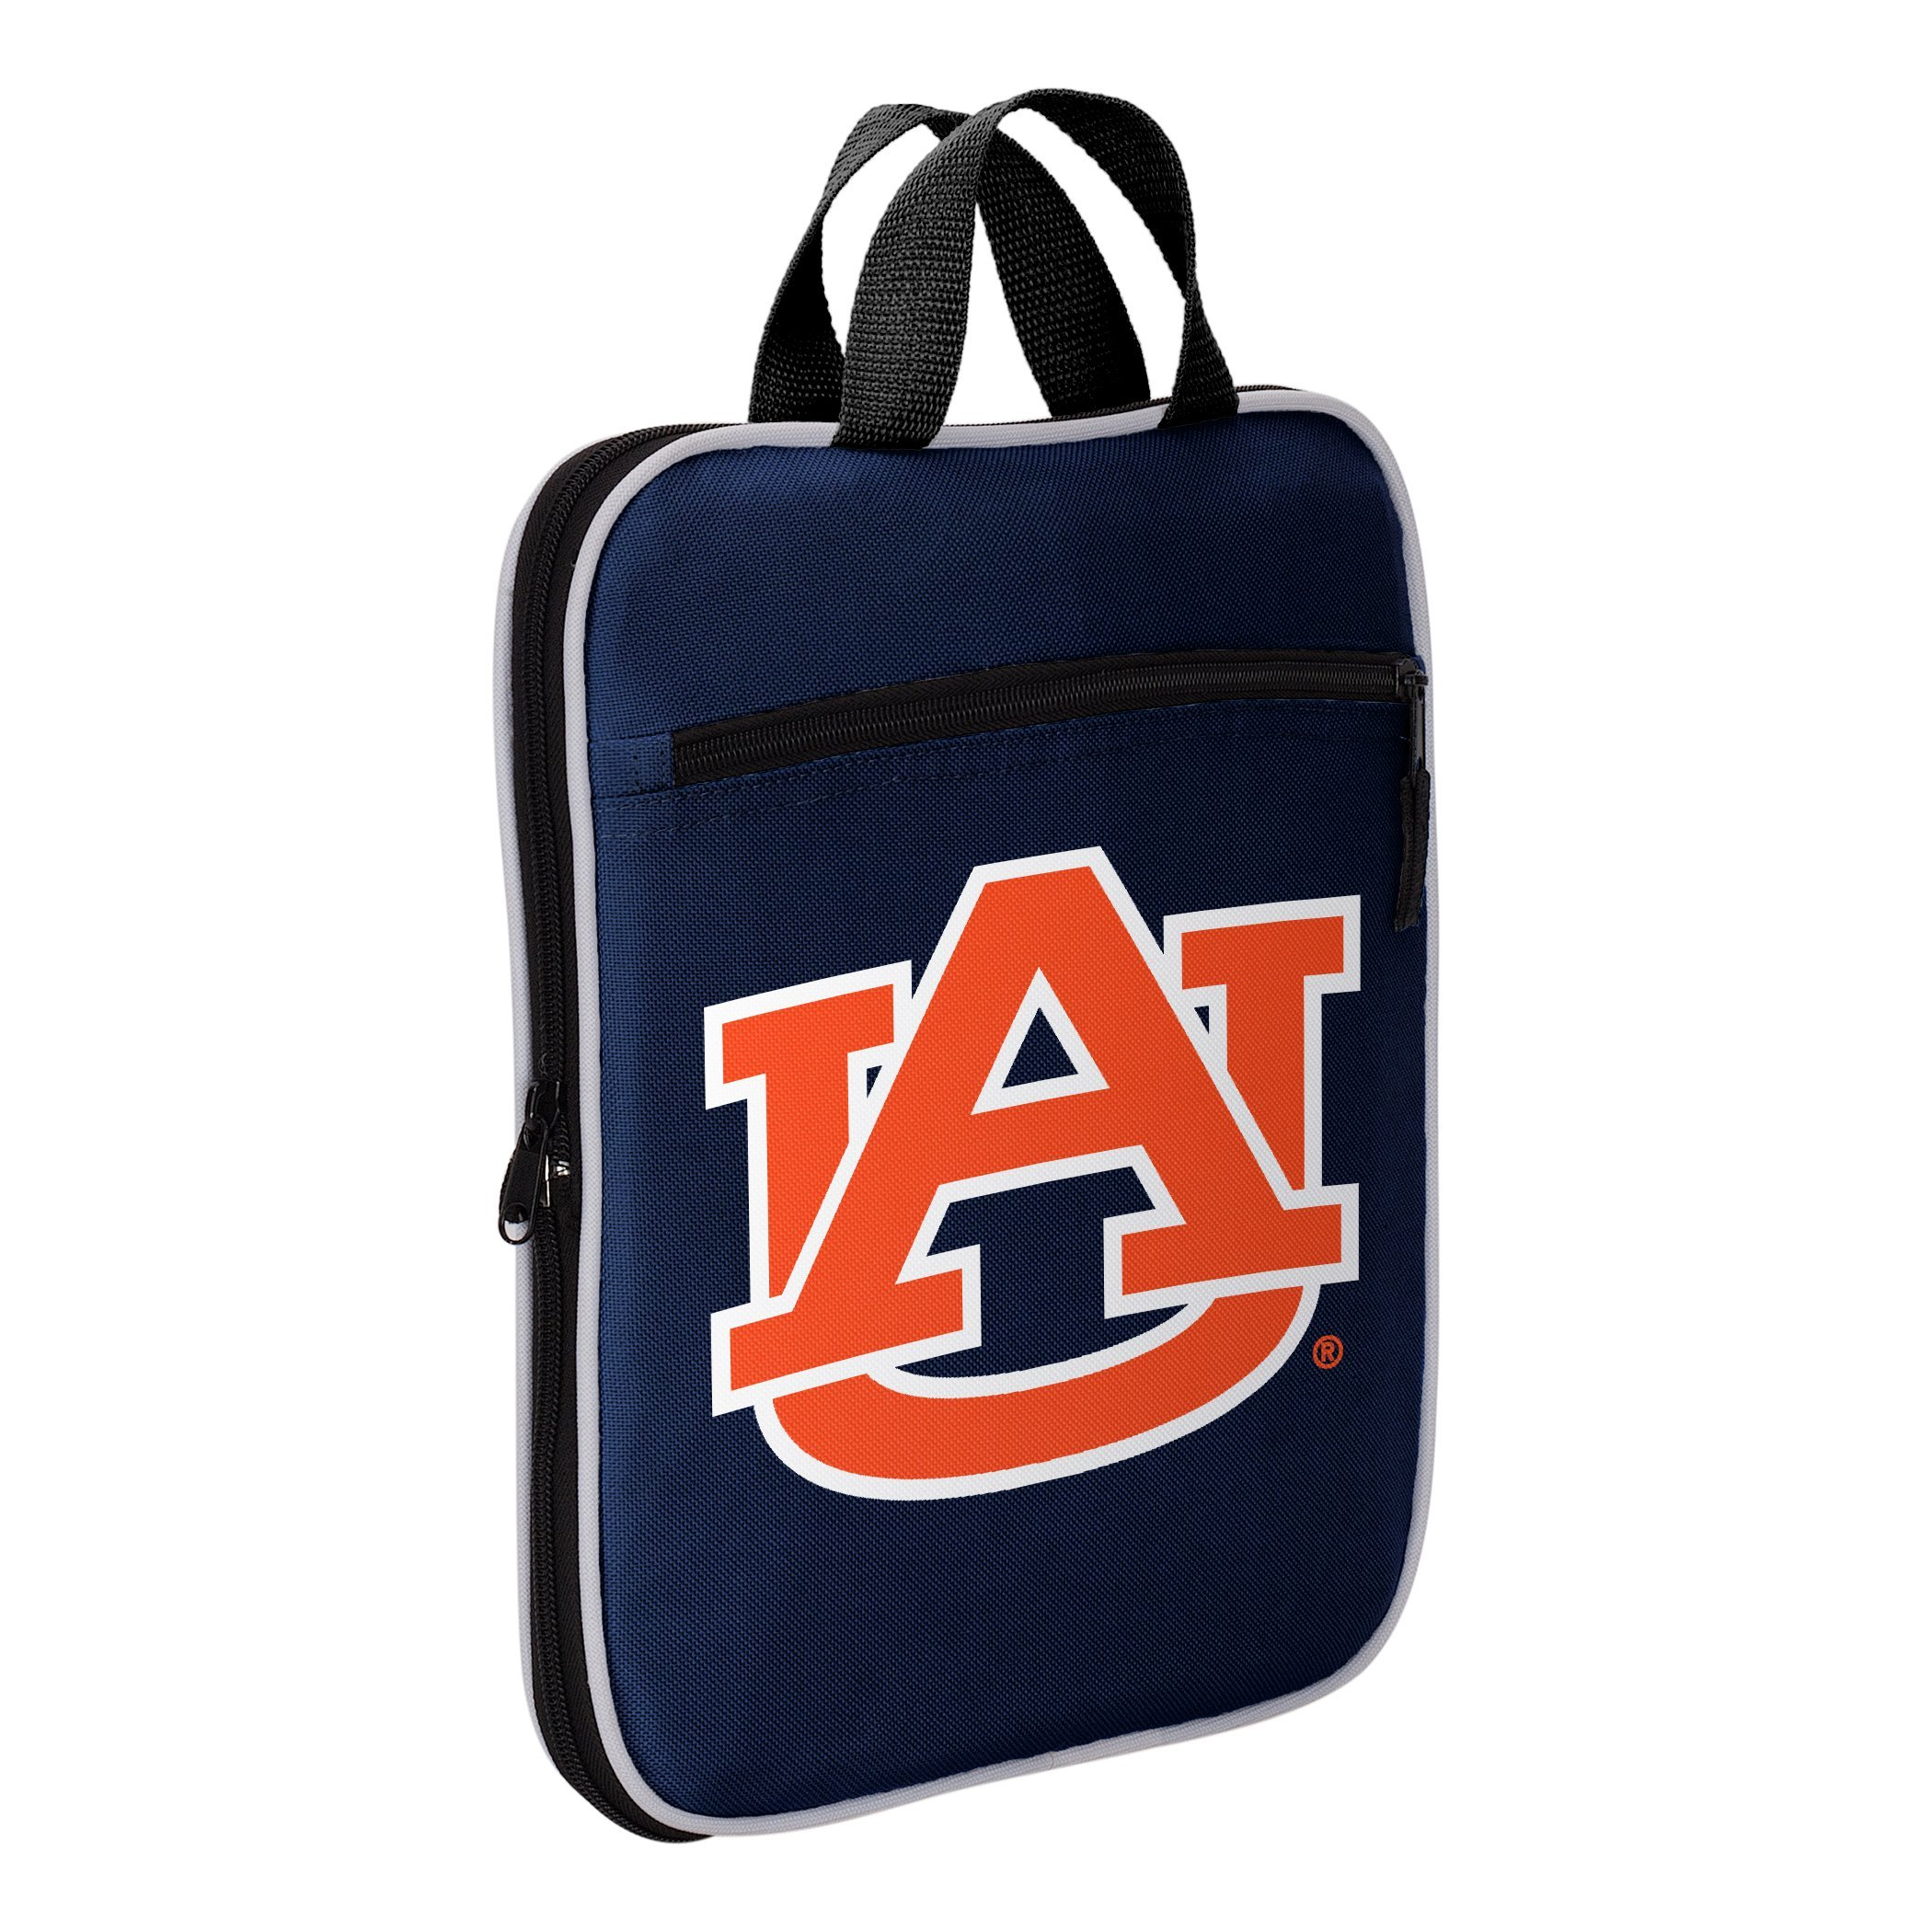 Officially Licensed NCAA Auburn Tigers Steal Duffel Bag by The Northwest Company (Image #4)